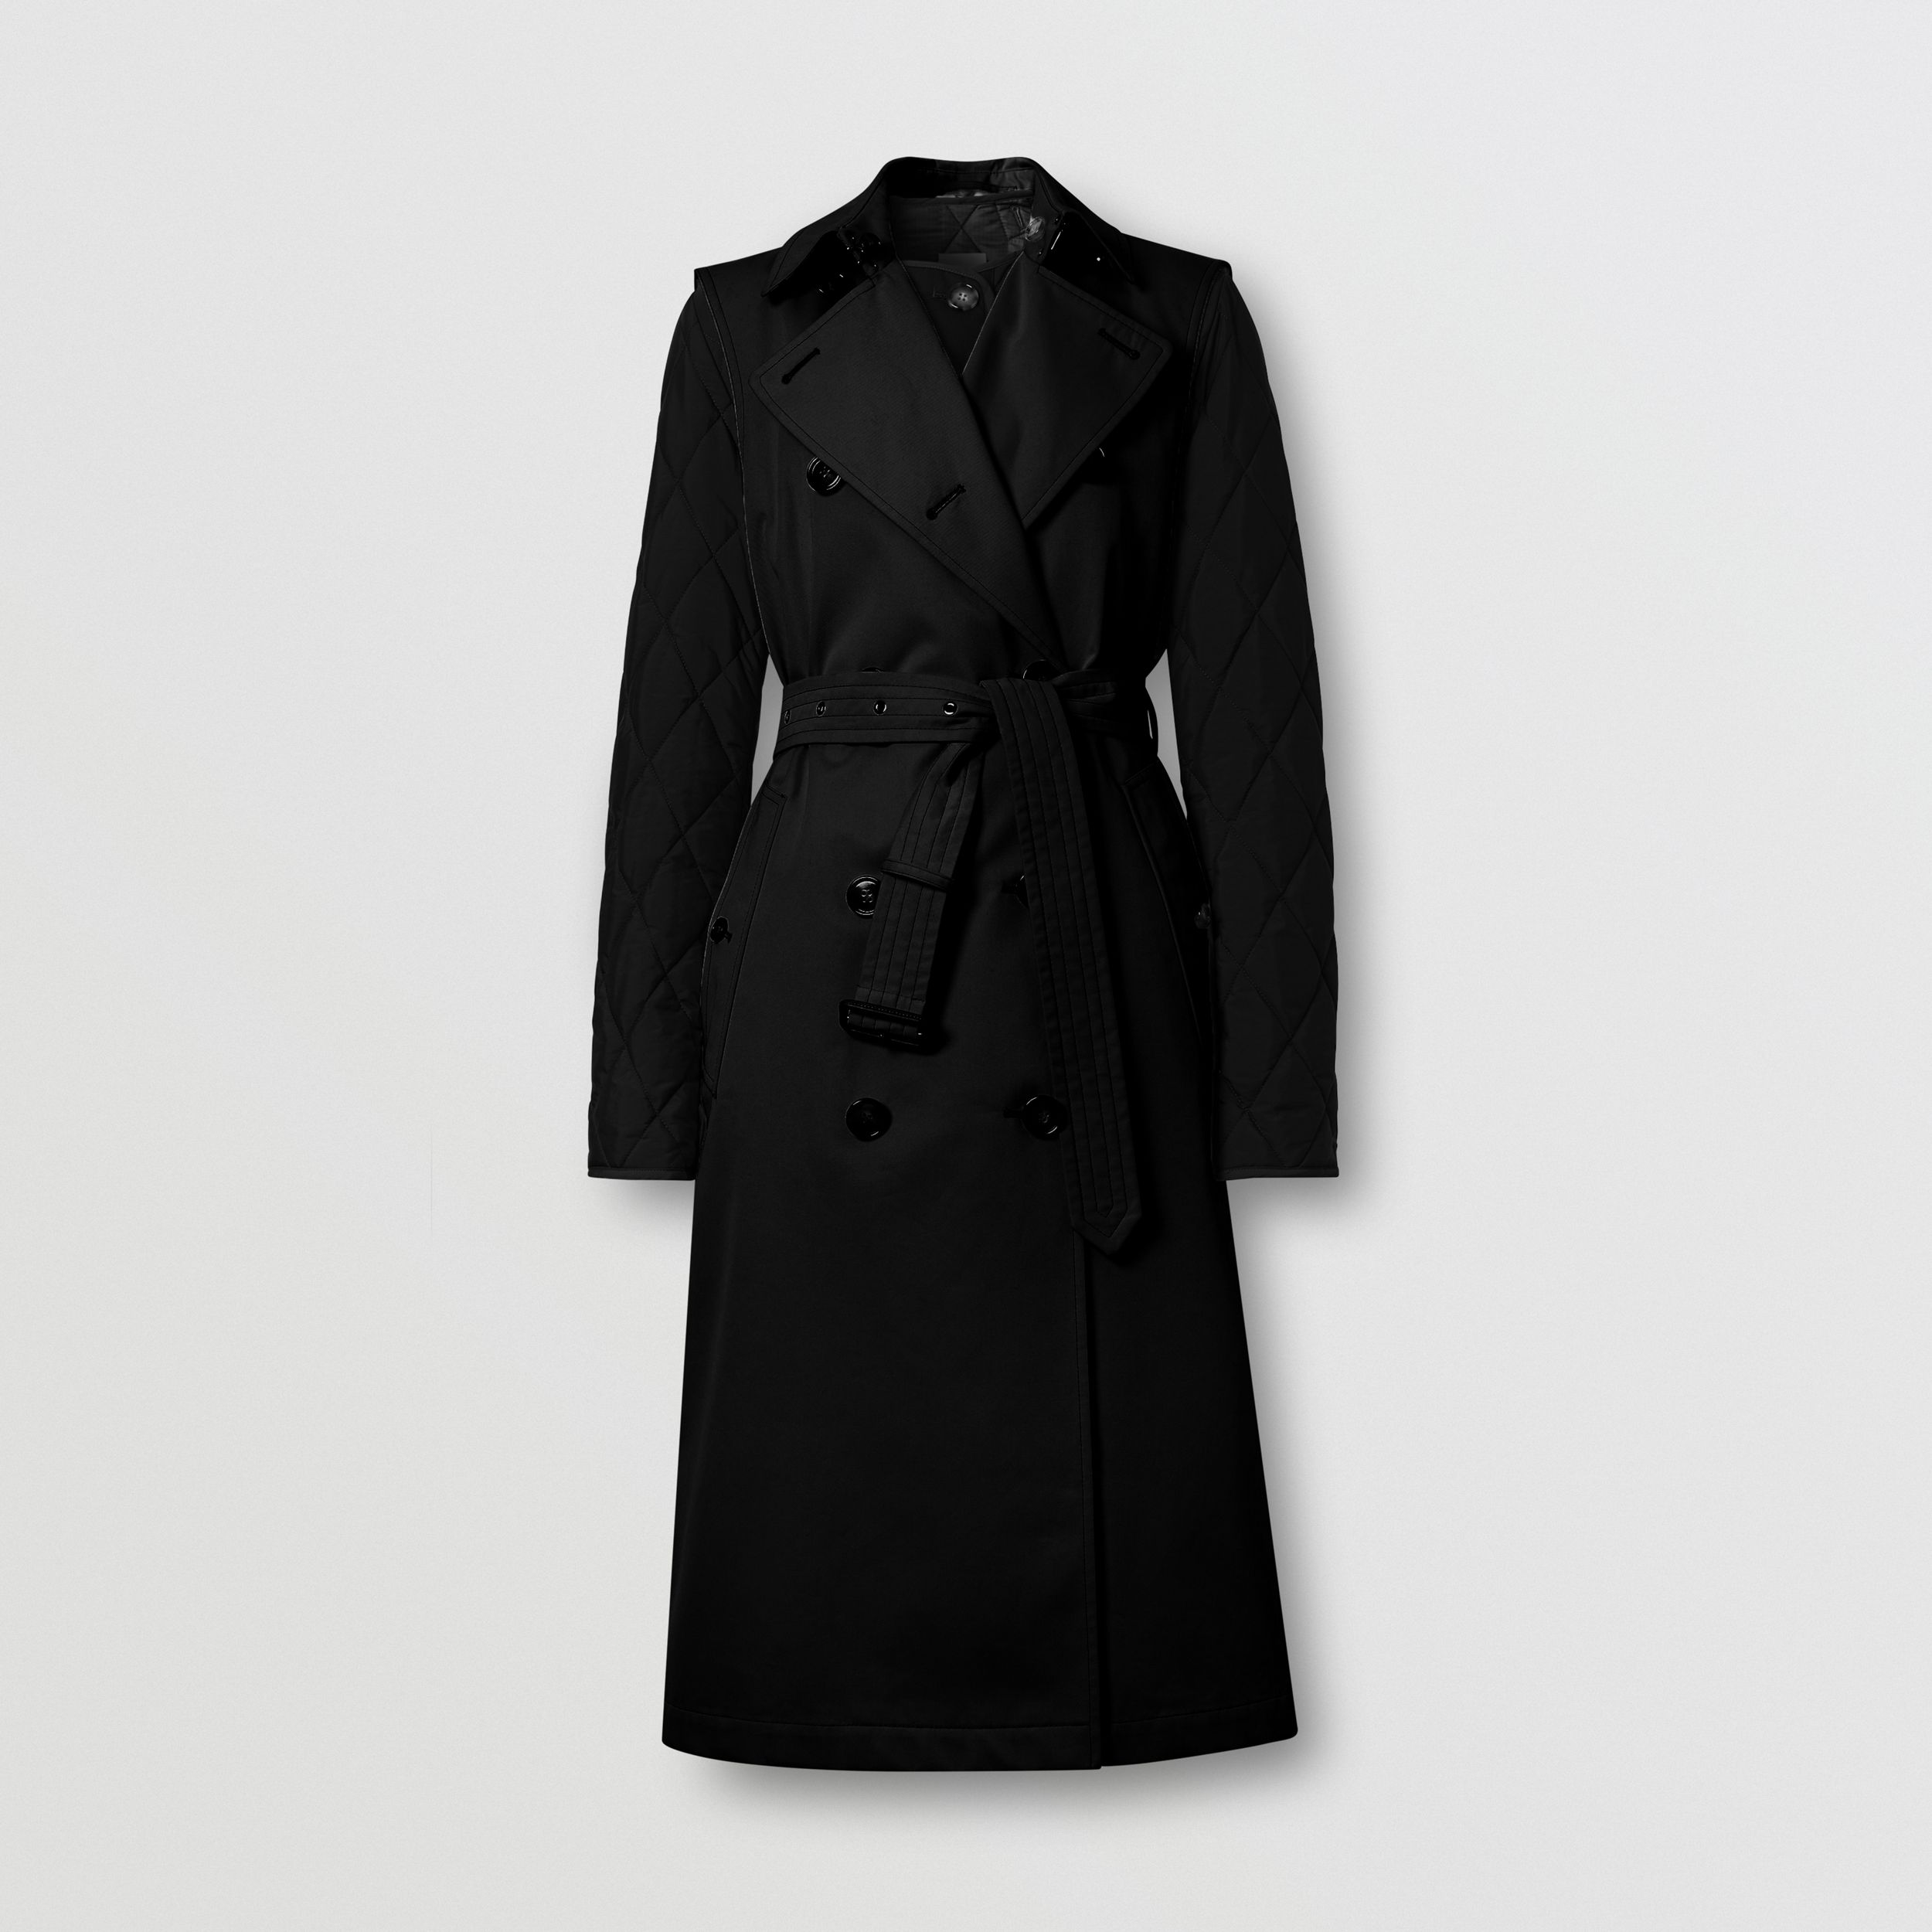 Sleeveless Trench Coat with Detachable Warmer in Black - Women | Burberry - 4